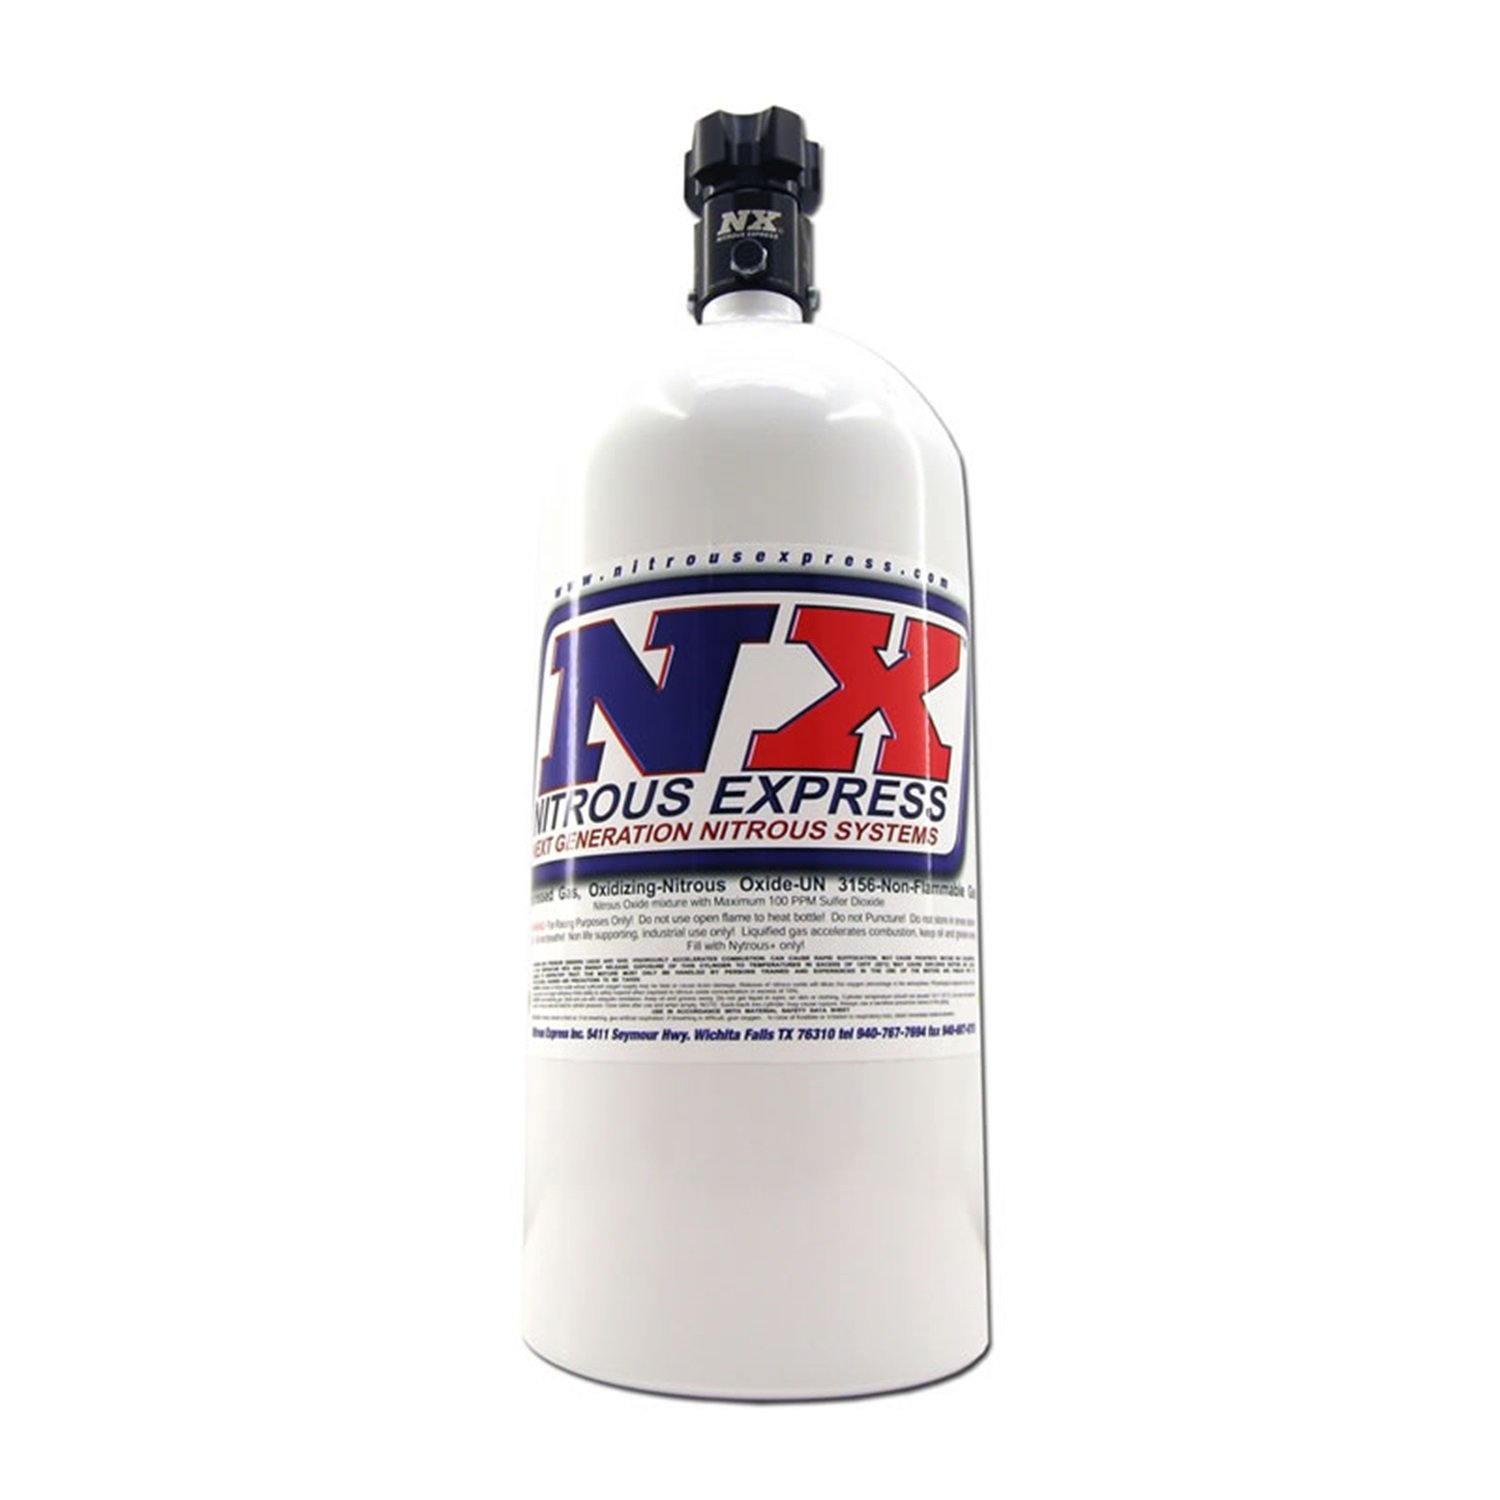 Nitrous Express 11100 Nitrous Bottle with Standard L45 Valve - 10 lbs. by Nitrous Express